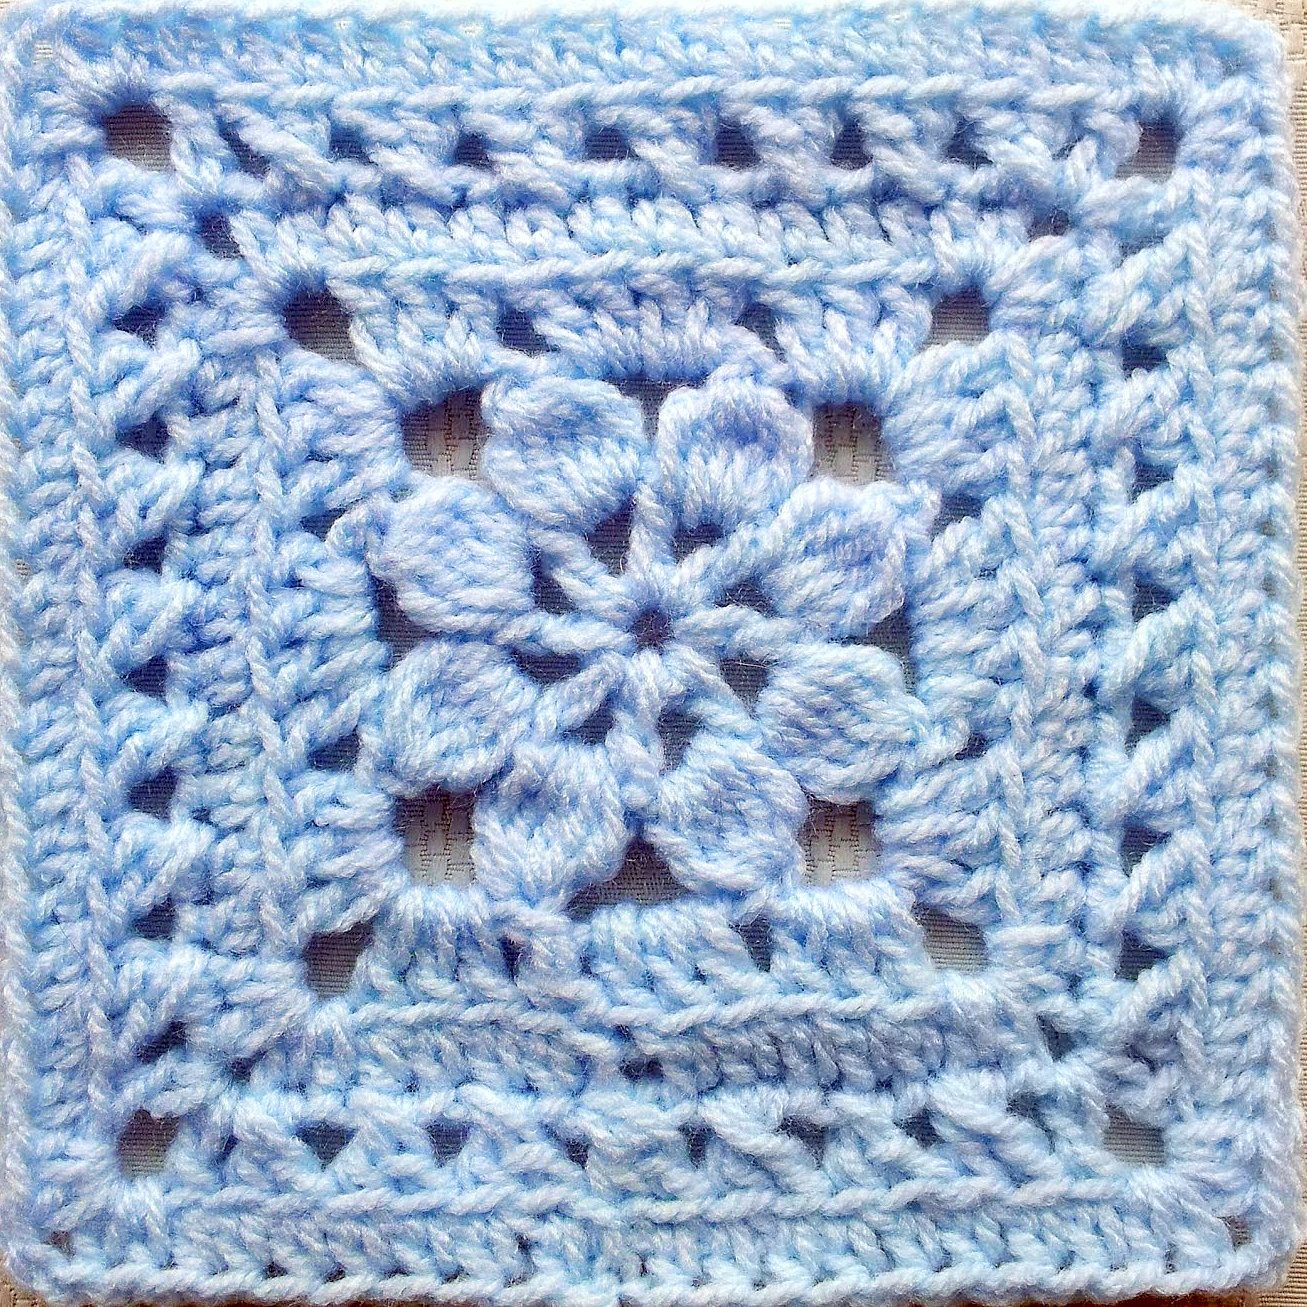 Free Granny Square Patterns Elegant Crochet Patterns On Pinterest Of Incredible 49 Pictures Free Granny Square Patterns